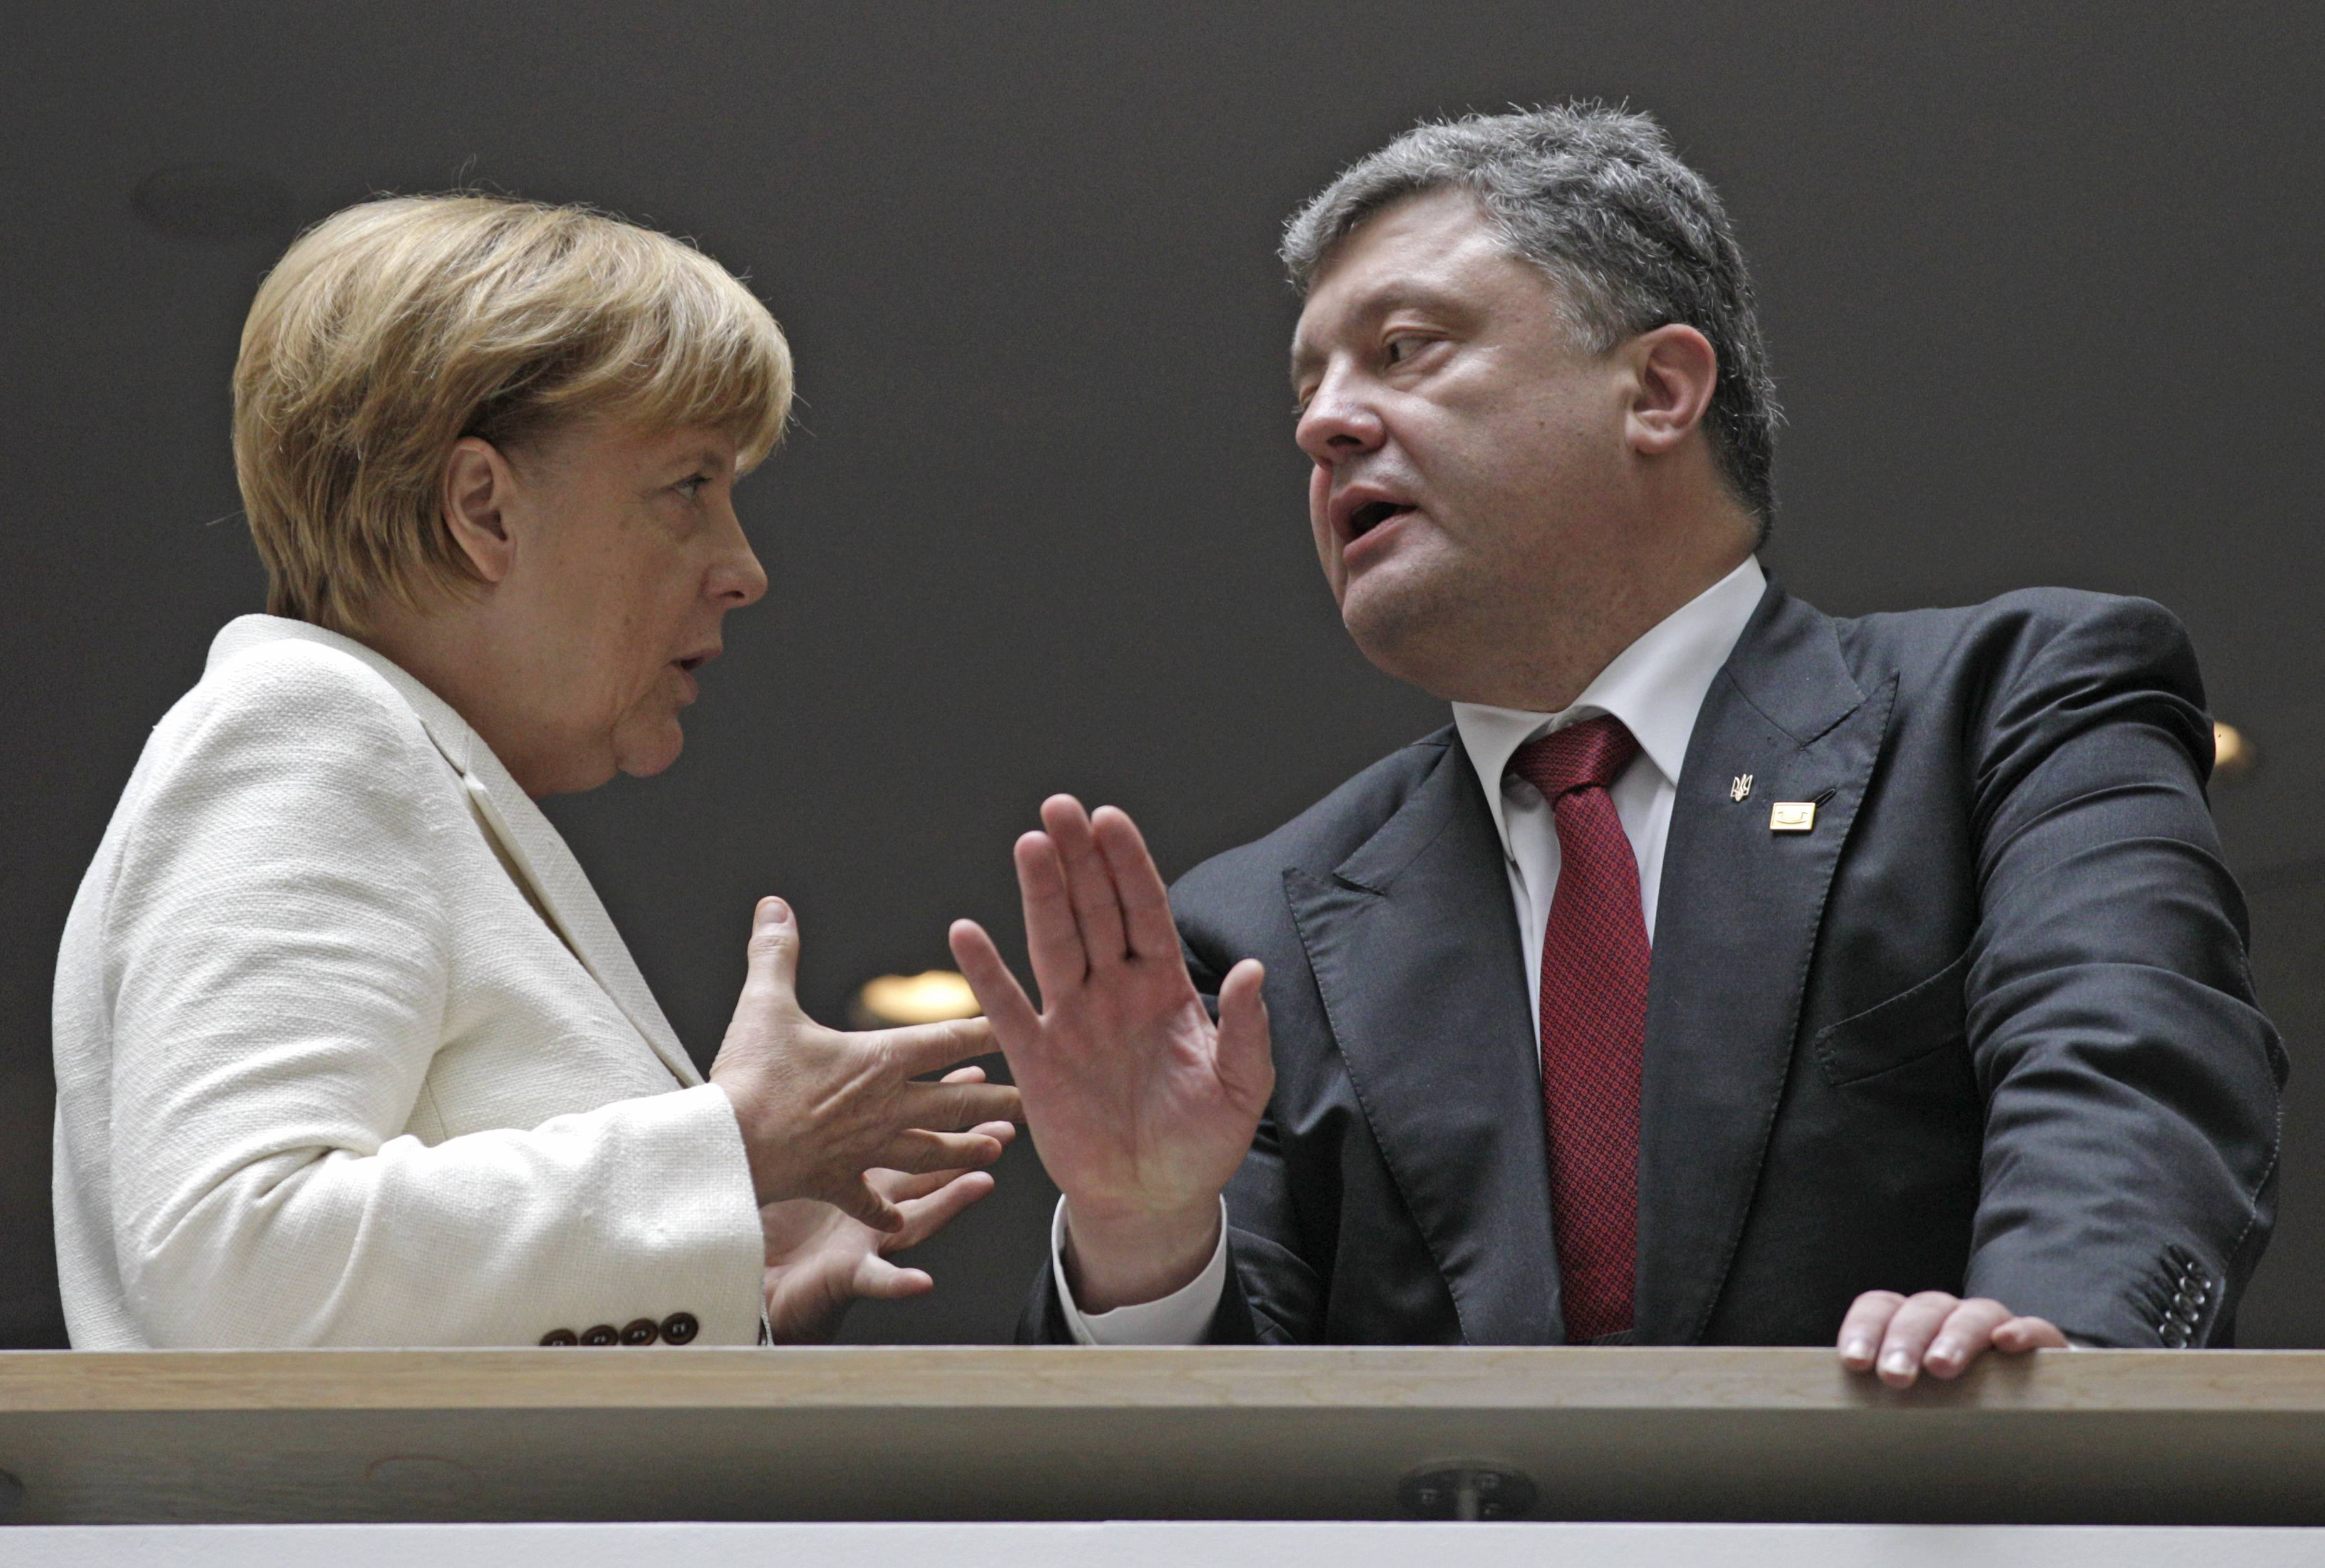 Ukrainian President Petro Poroshenko, right, talks with German Chancellor Angela Merkel during an European People's Party summit ahead of the EU summit in Brussels, Saturday.